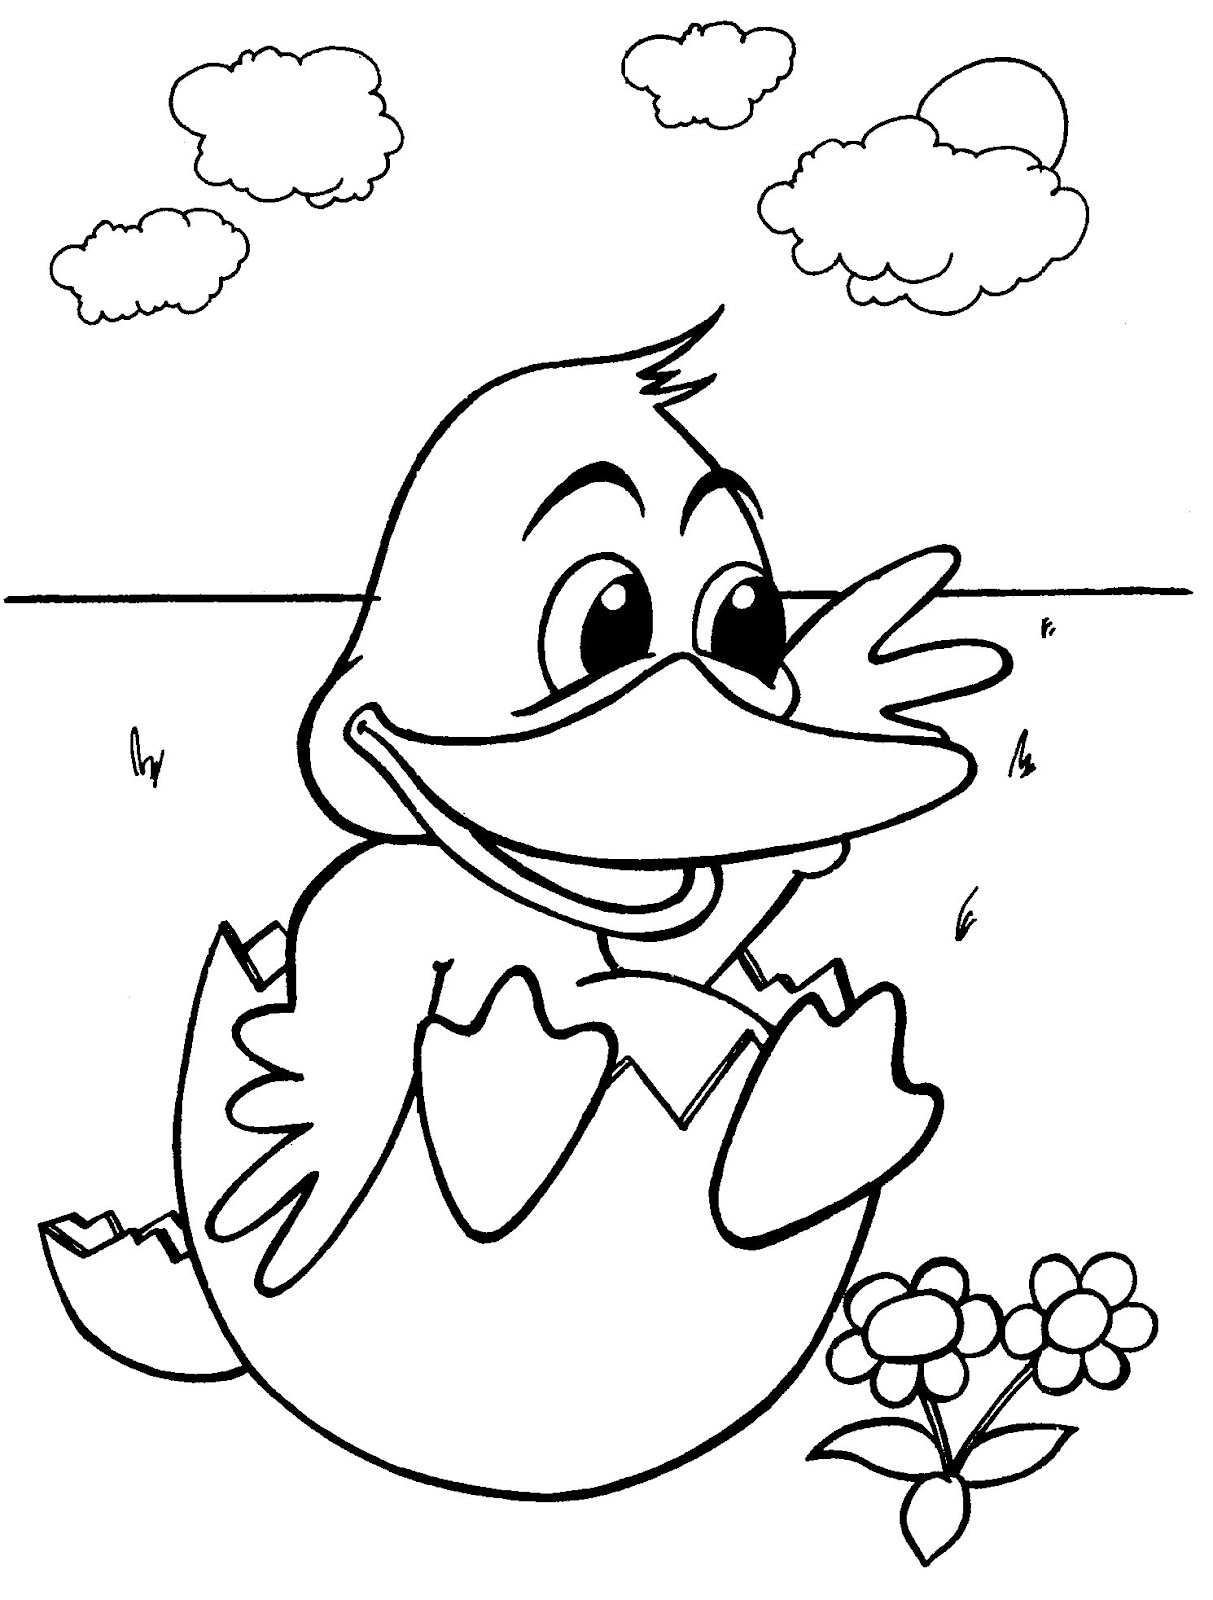 Baby Ducks Coloring Pages Pictures